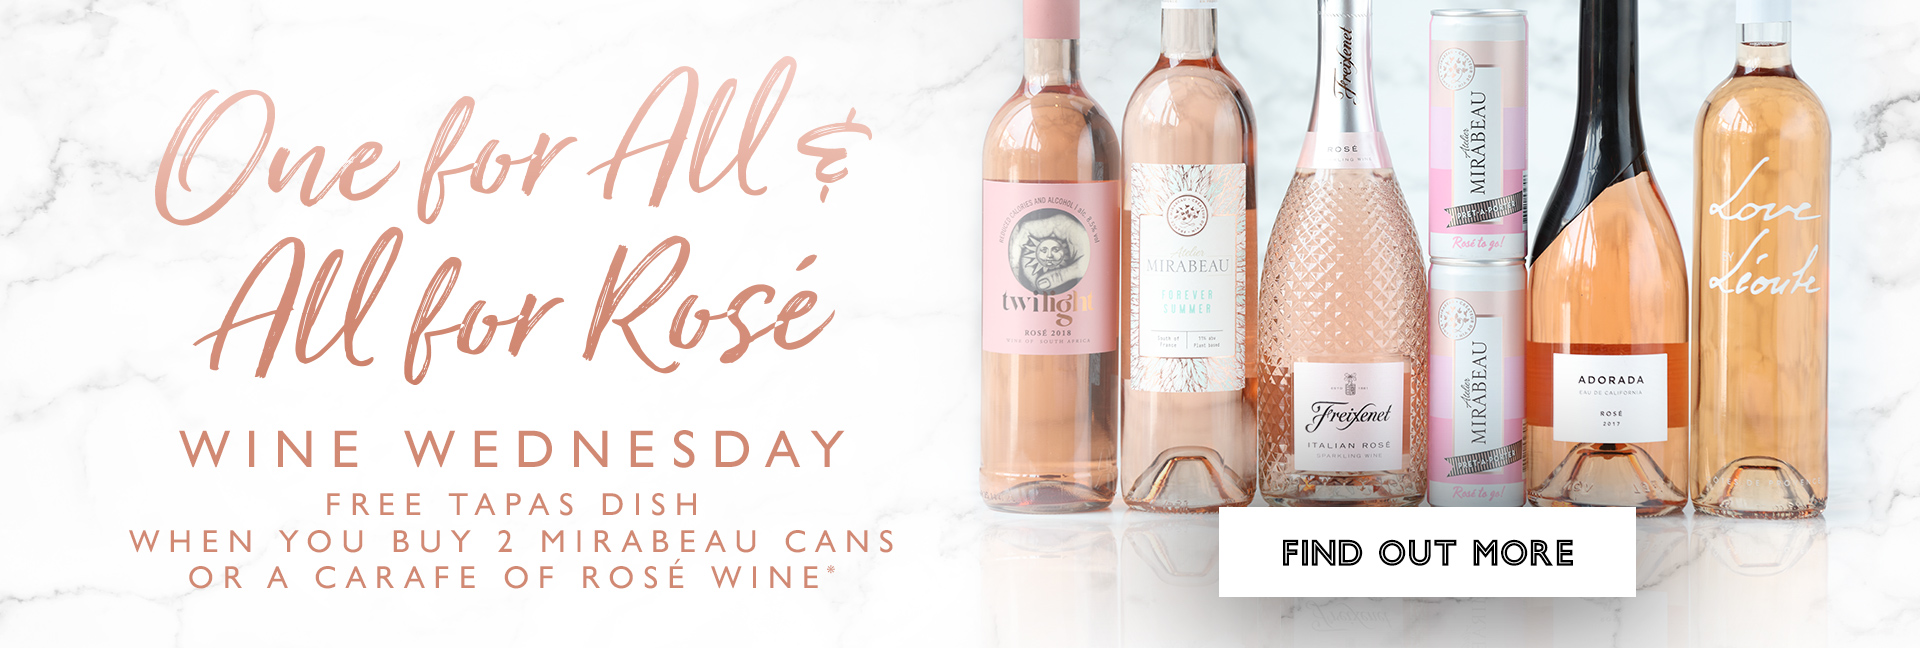 Wine Wednesdays at All Bar One New Street Station